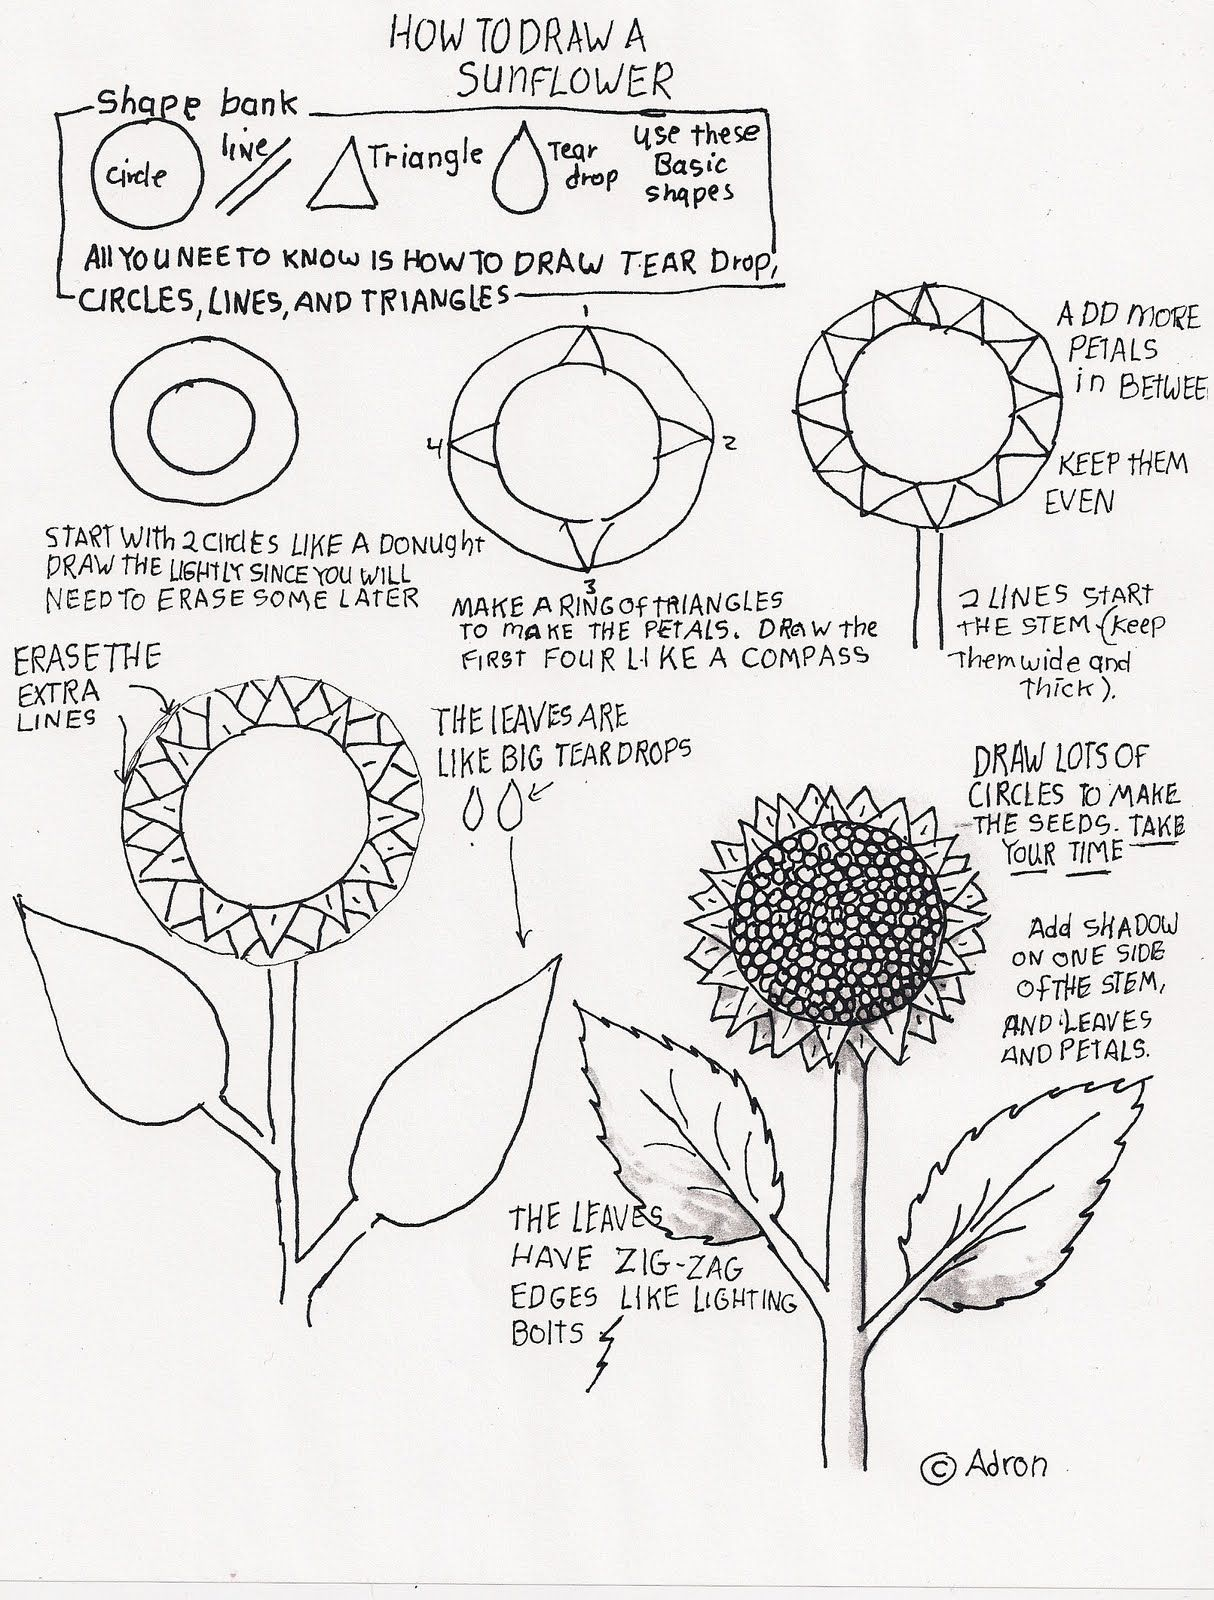 Sunflower Seeds Worksheet